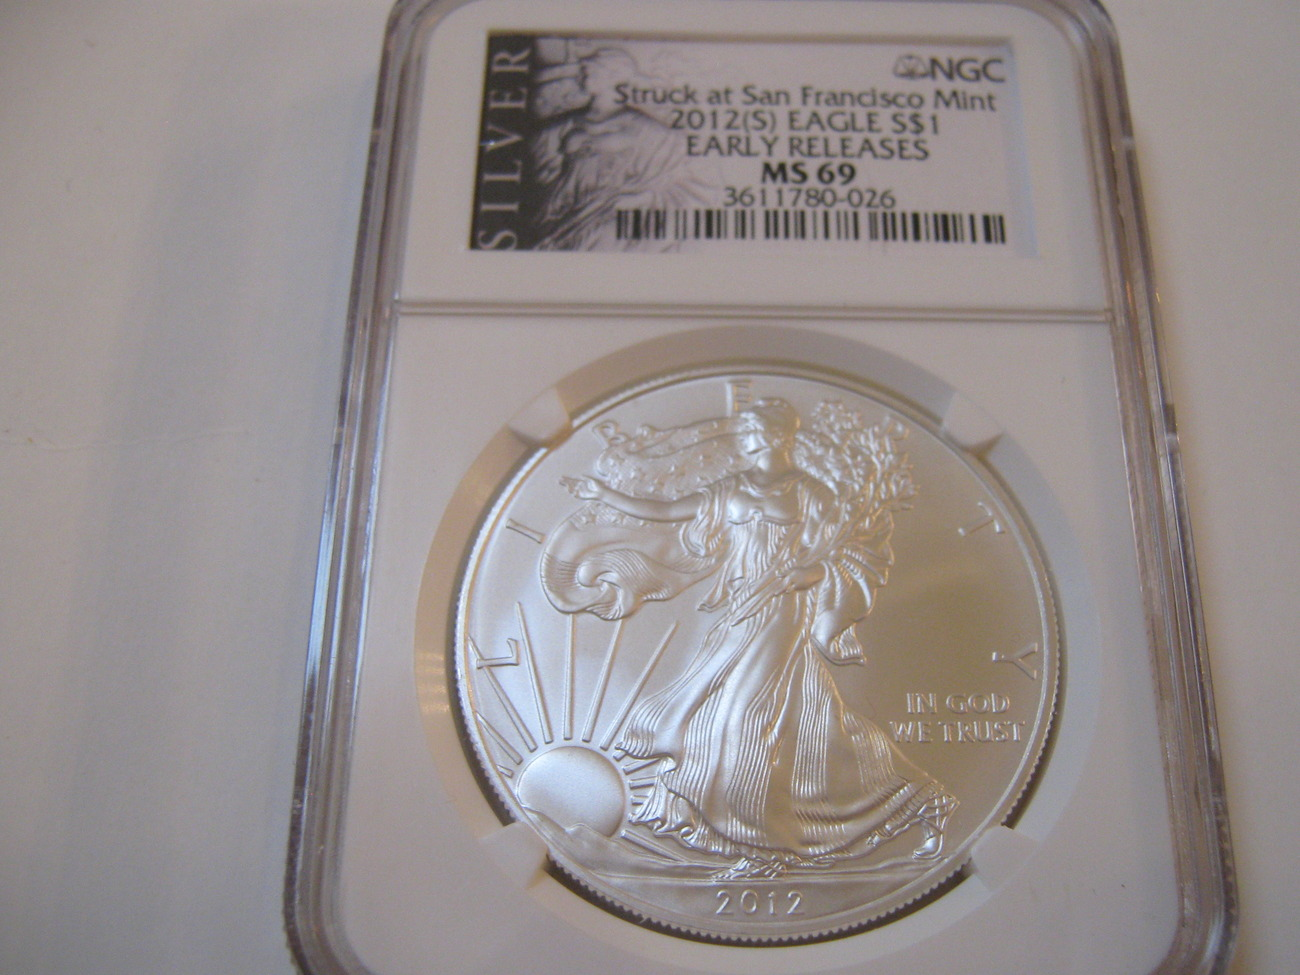 2012(S) Silver Eagle , NGC , MS 69